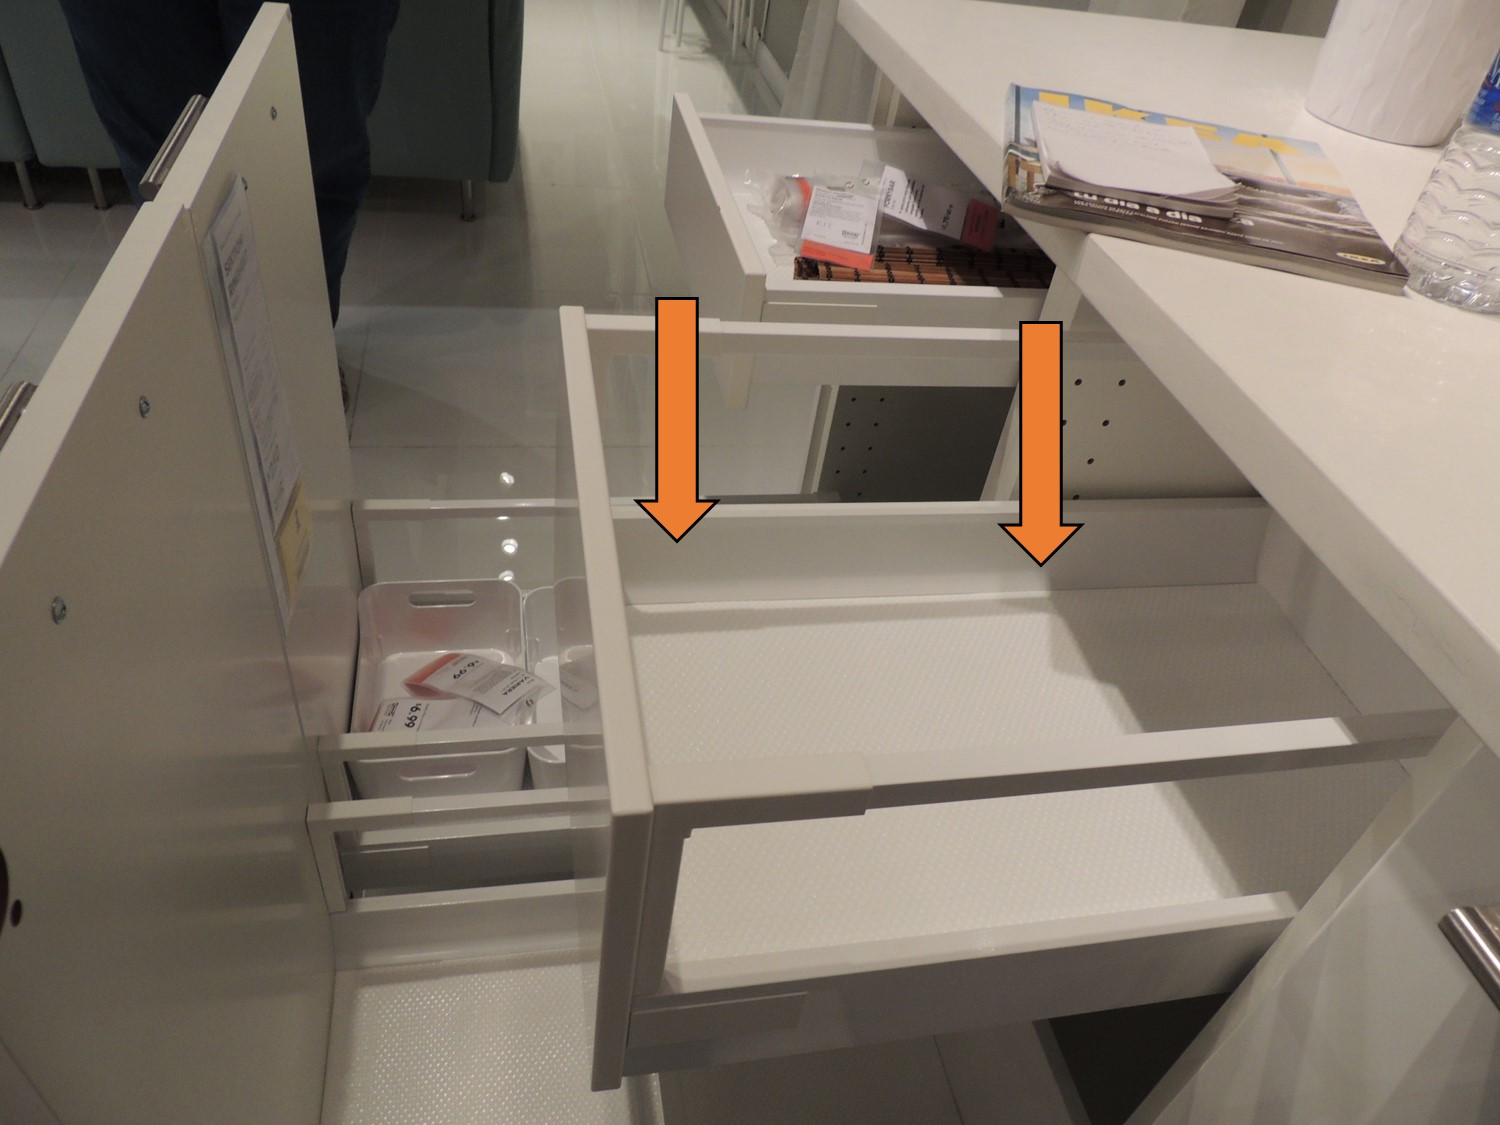 Ikea Faktum Instructions The Difference Between Ikea S Two Different Kitchen Drawer Types